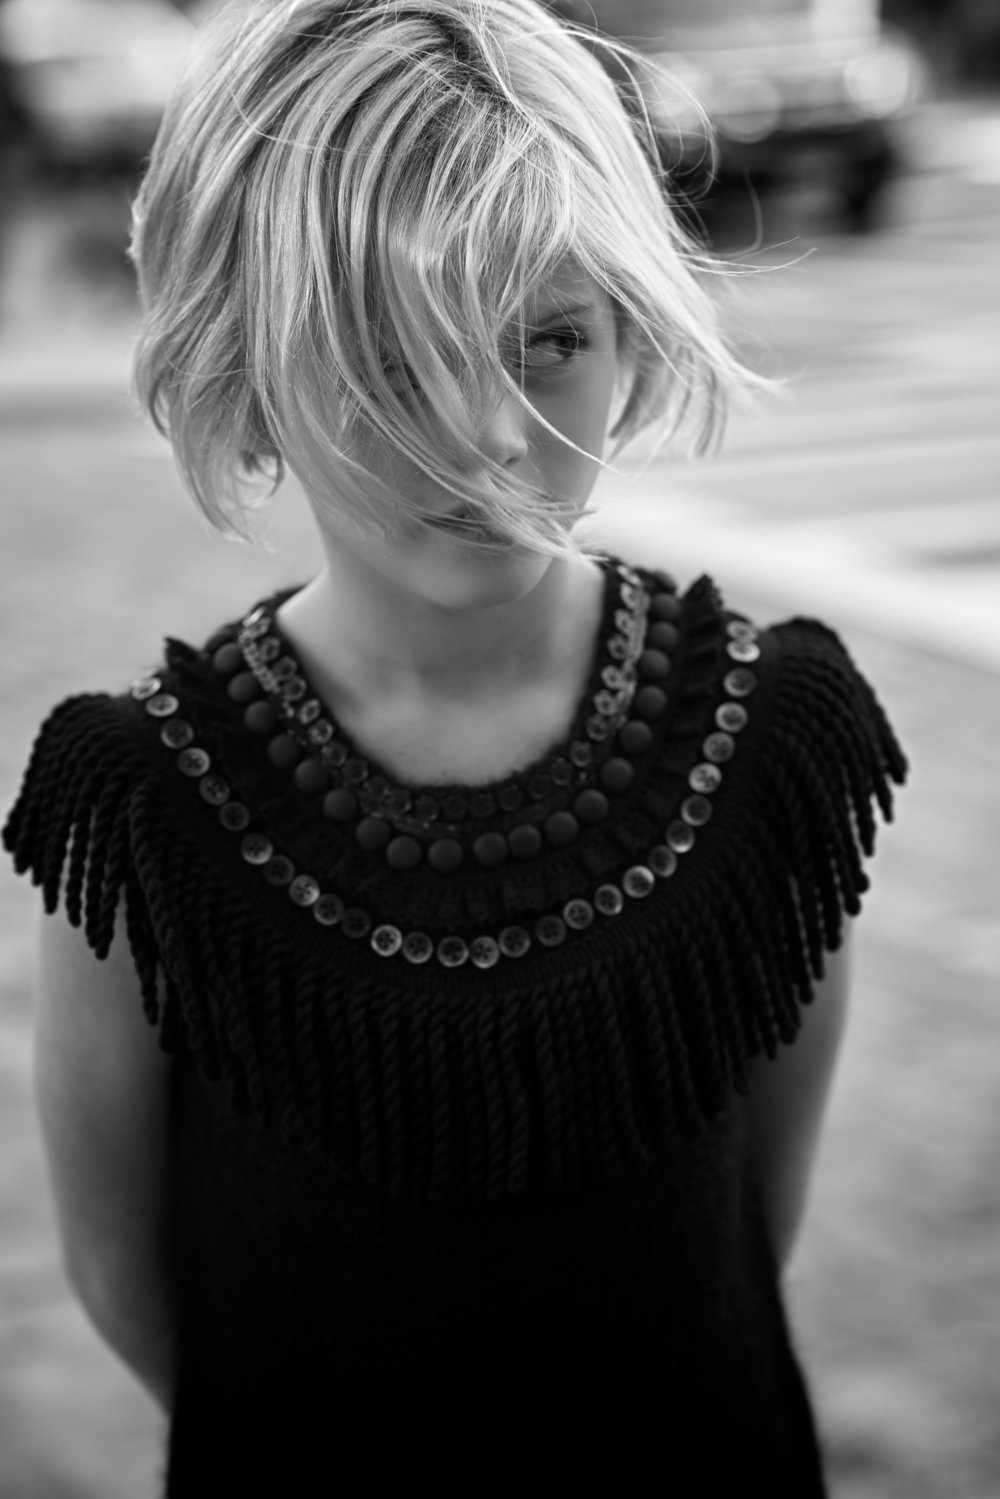 Enfant+Street+Style+by+Gina+Kim+Photography-20.jpeg